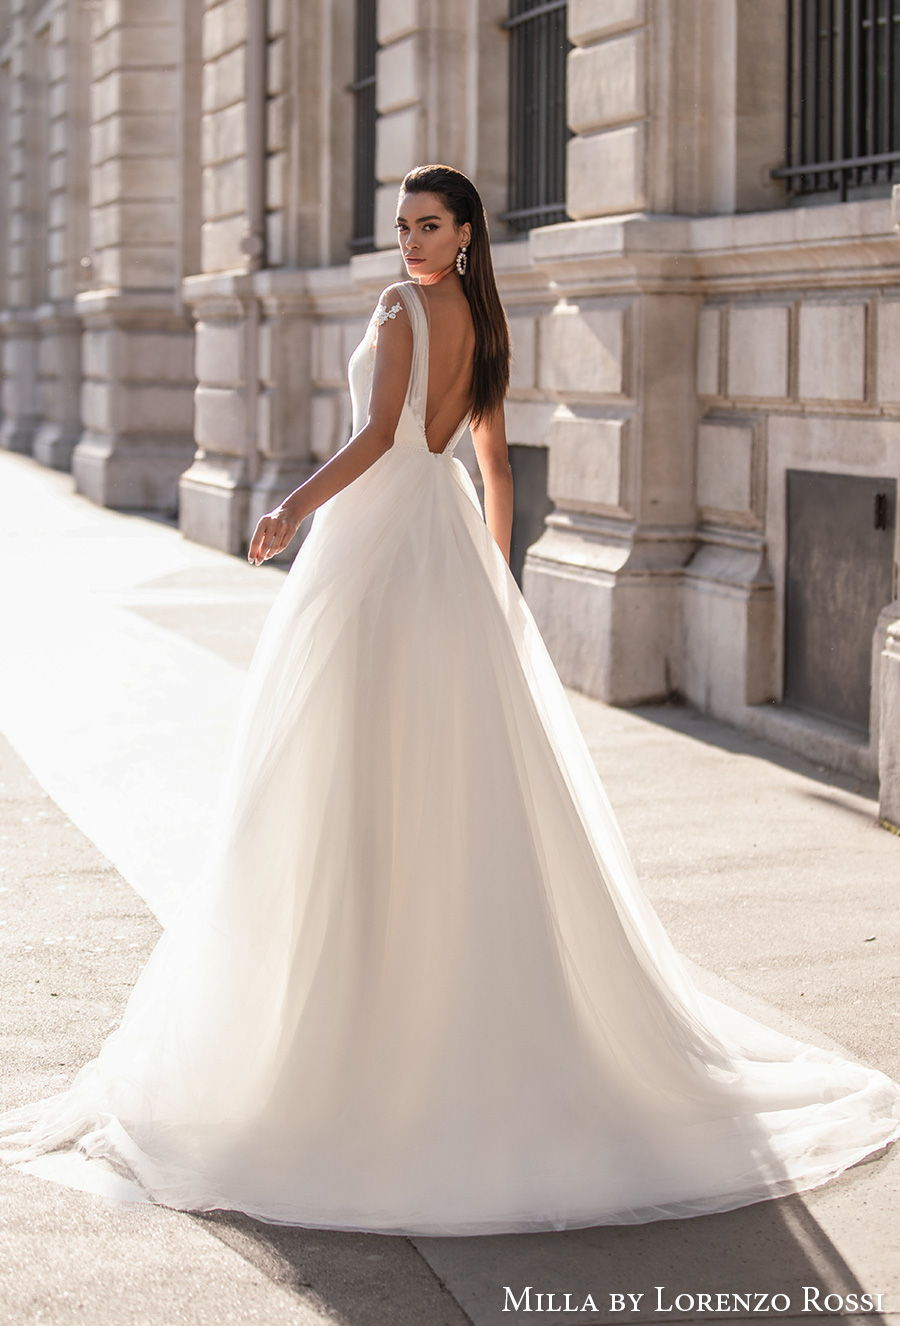 milla lorenzo rossi 2021 bridal cap sleeves  sweetheart neckline heavily embellished bodice romantic a  line wedding dress backless low v back chapel train (annebelle) bv